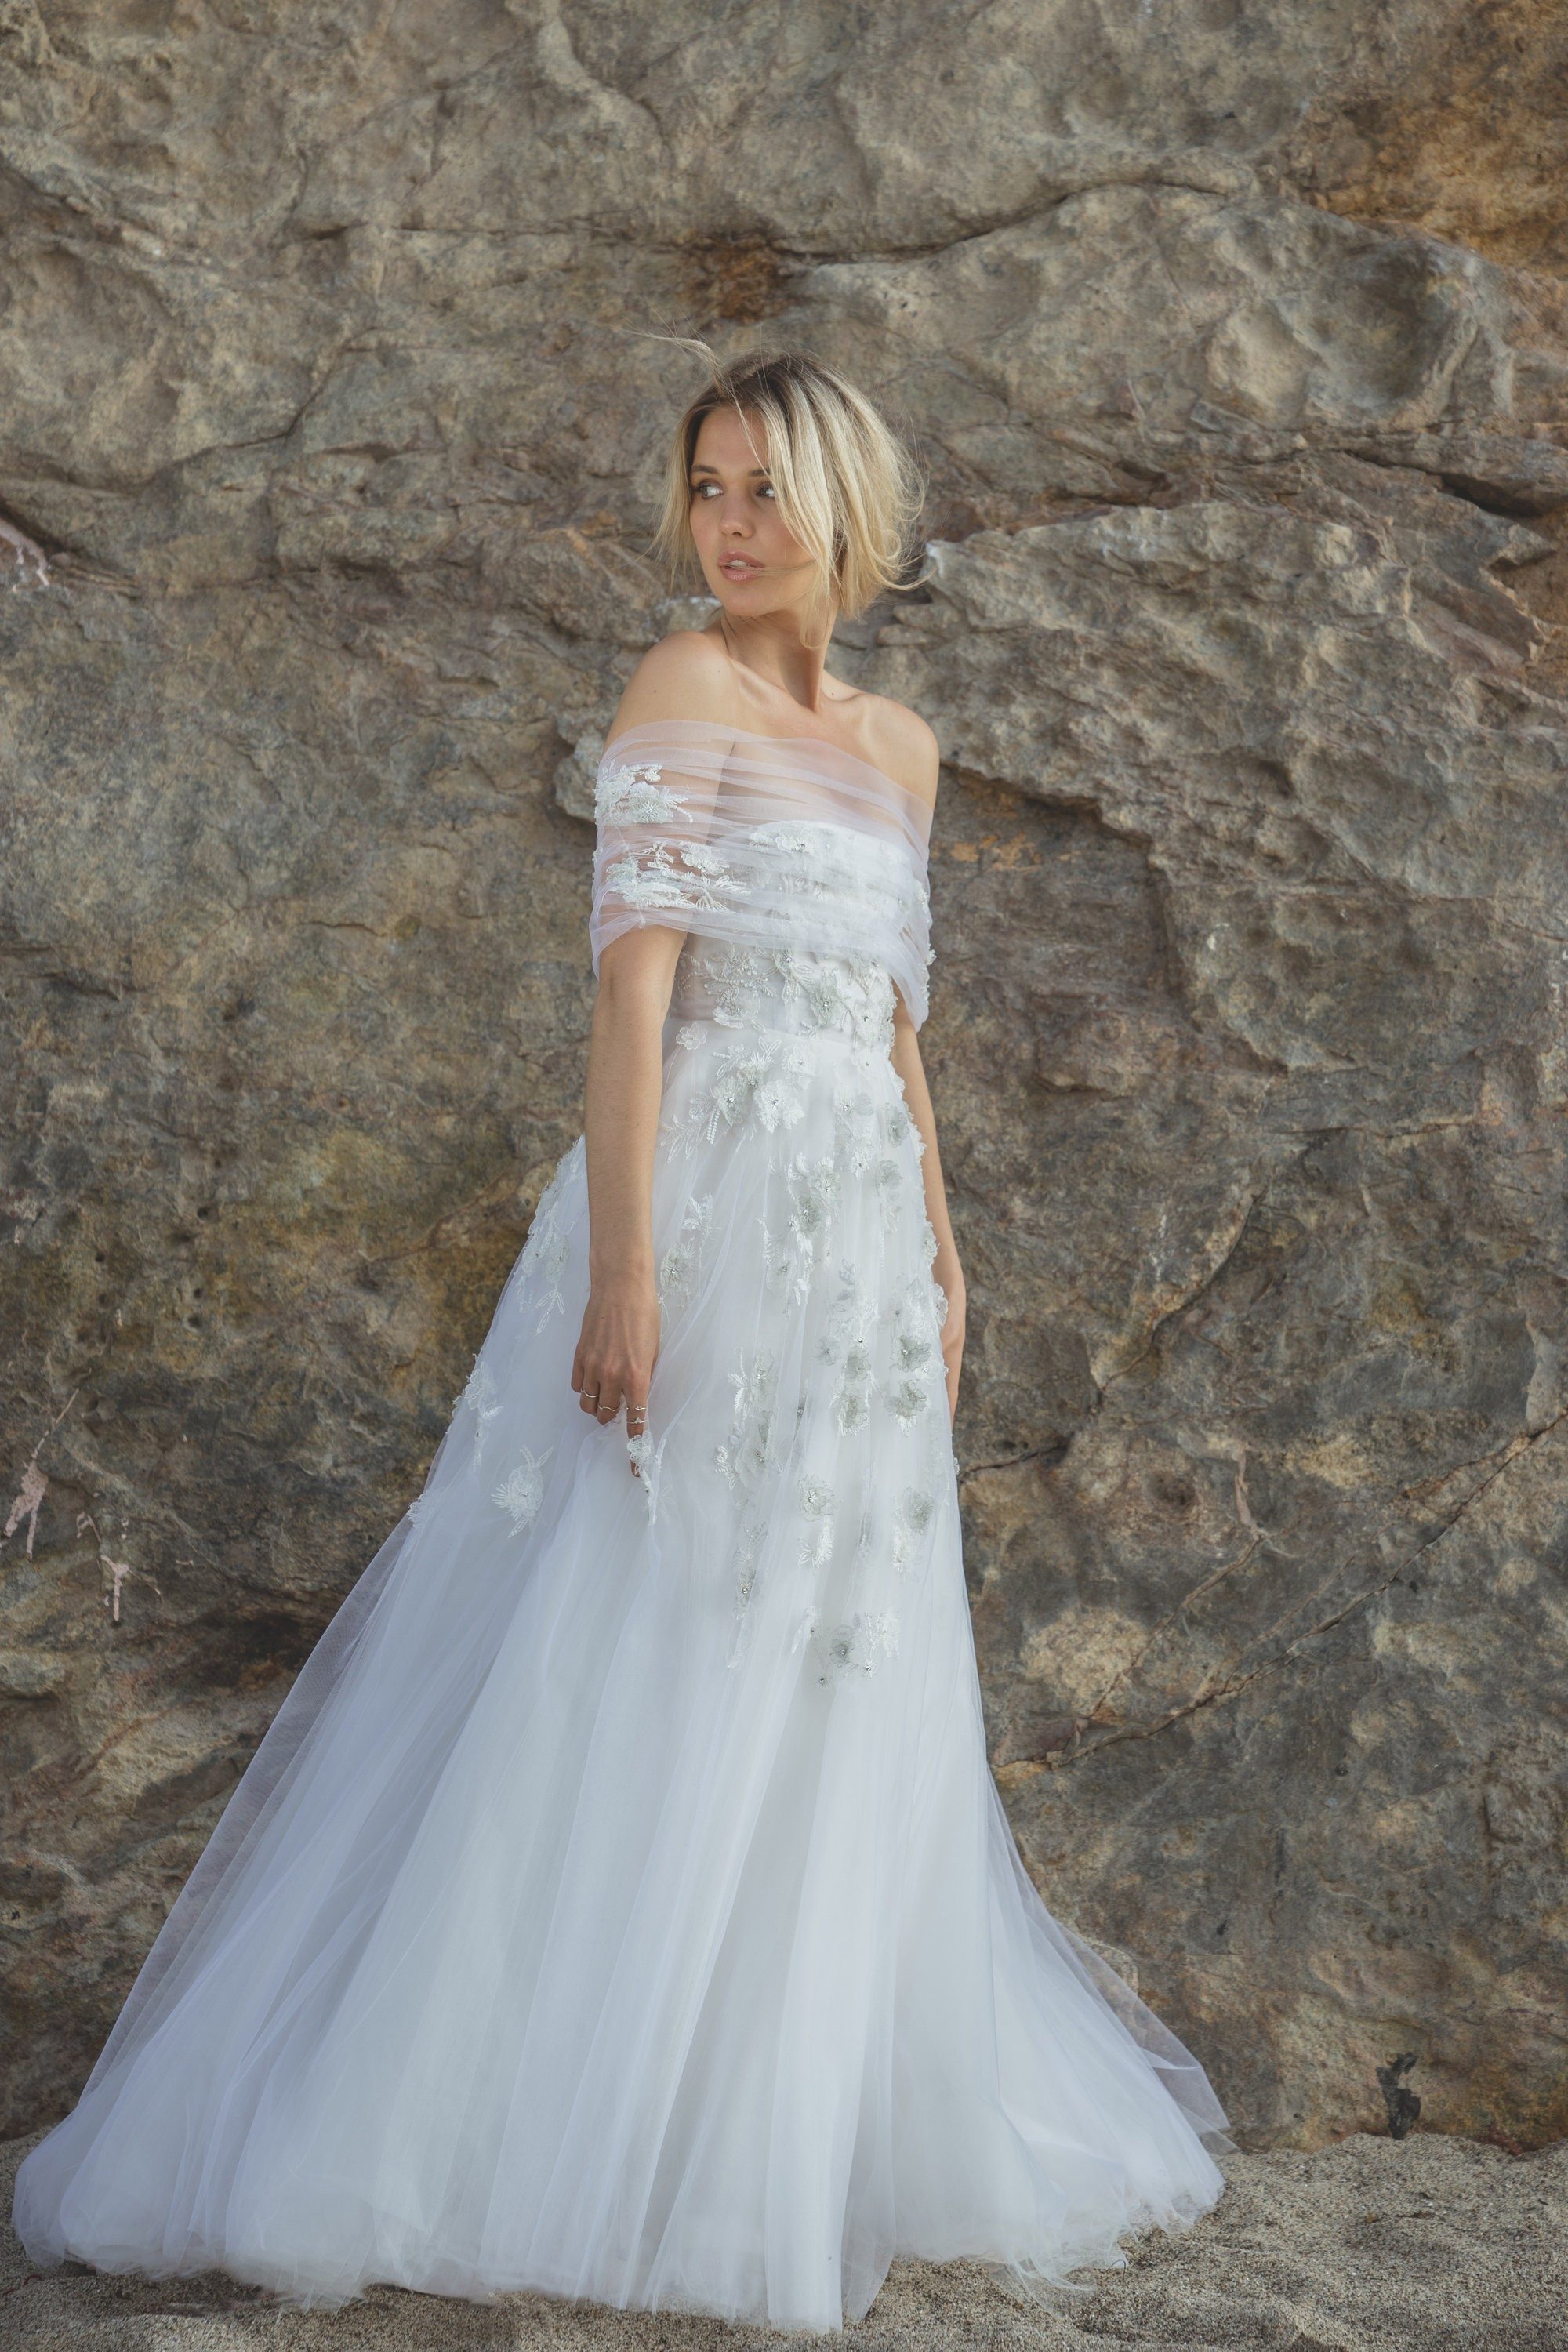 wedding planner, wedding inspiration, bridal dresses, wedding gowns, off the shoulder